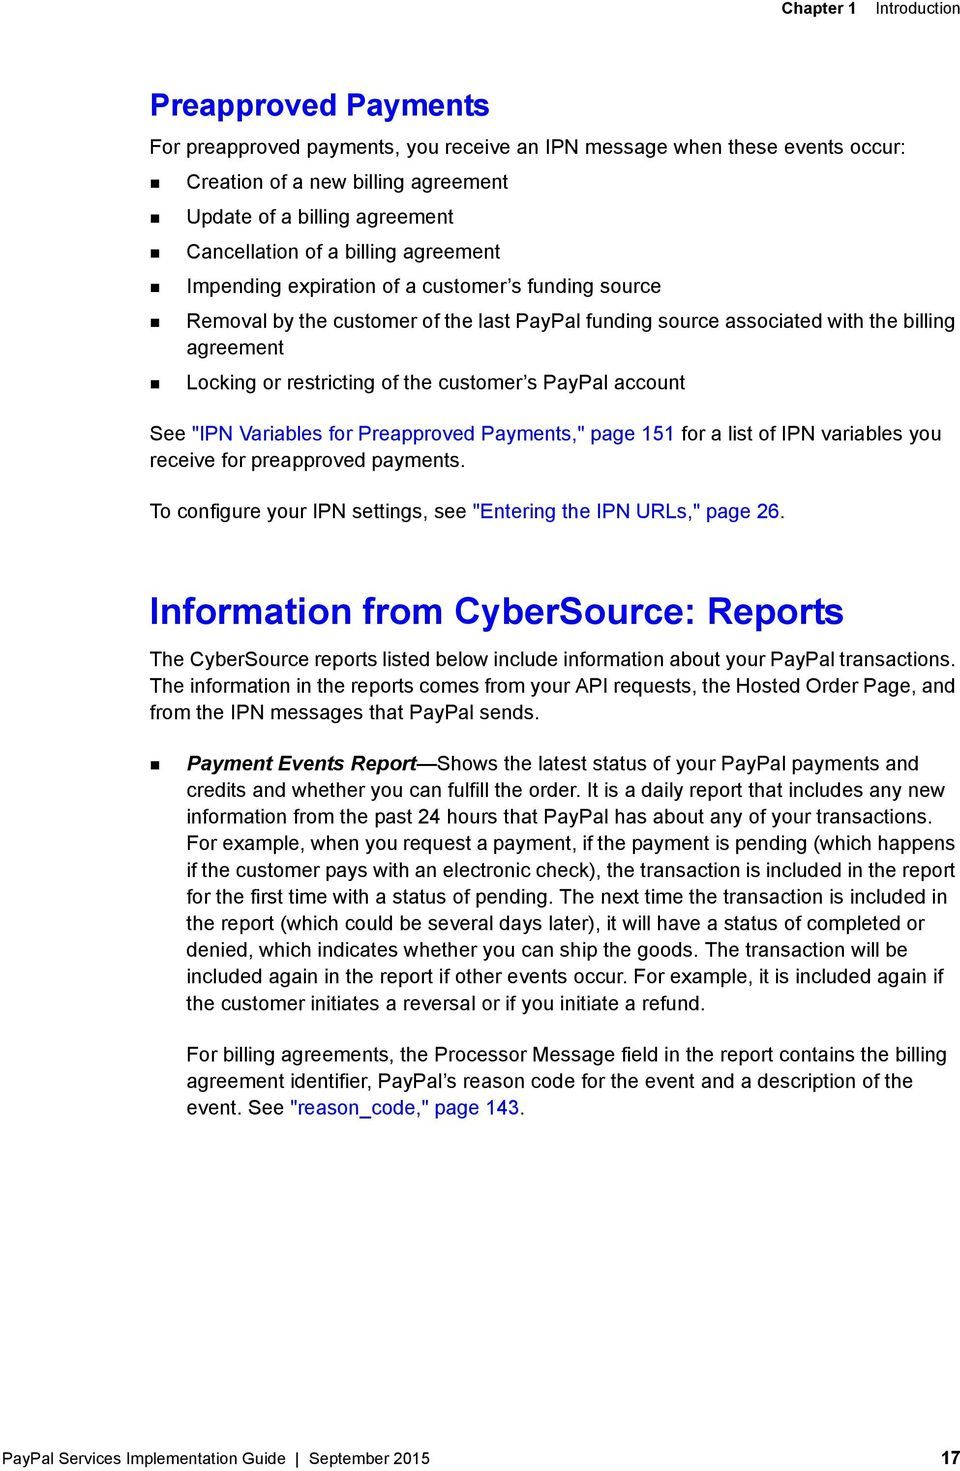 Cybersource Paypal Services Implementation Guide Pdf